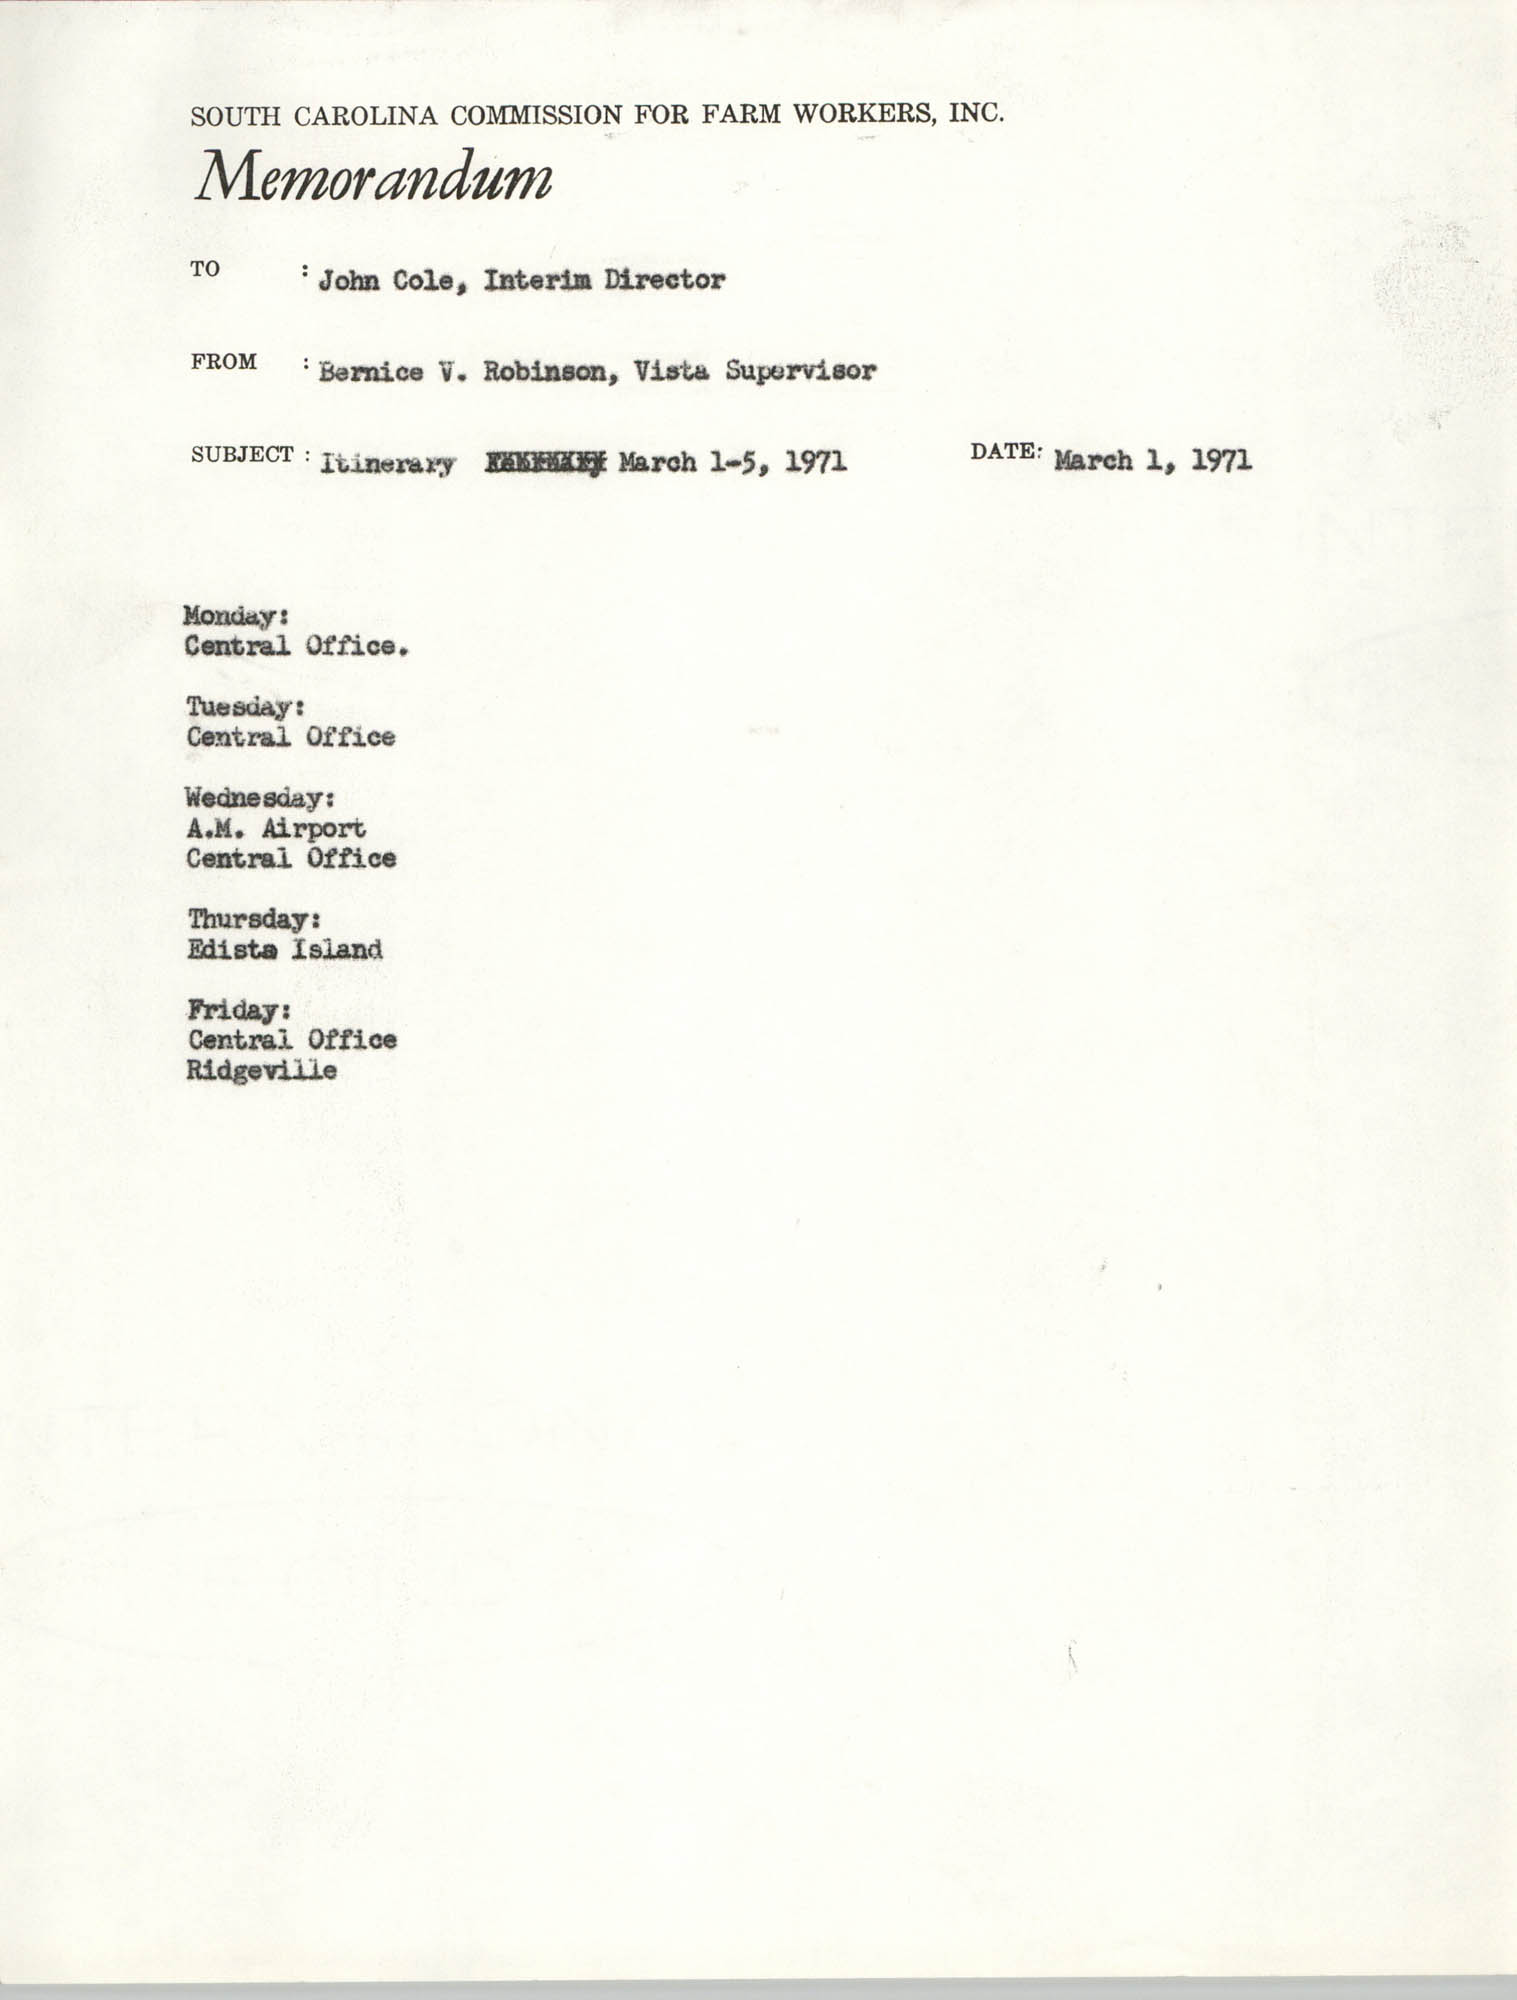 Memorandum from Bernice V. Robinson to John Cole, March 1, 1971